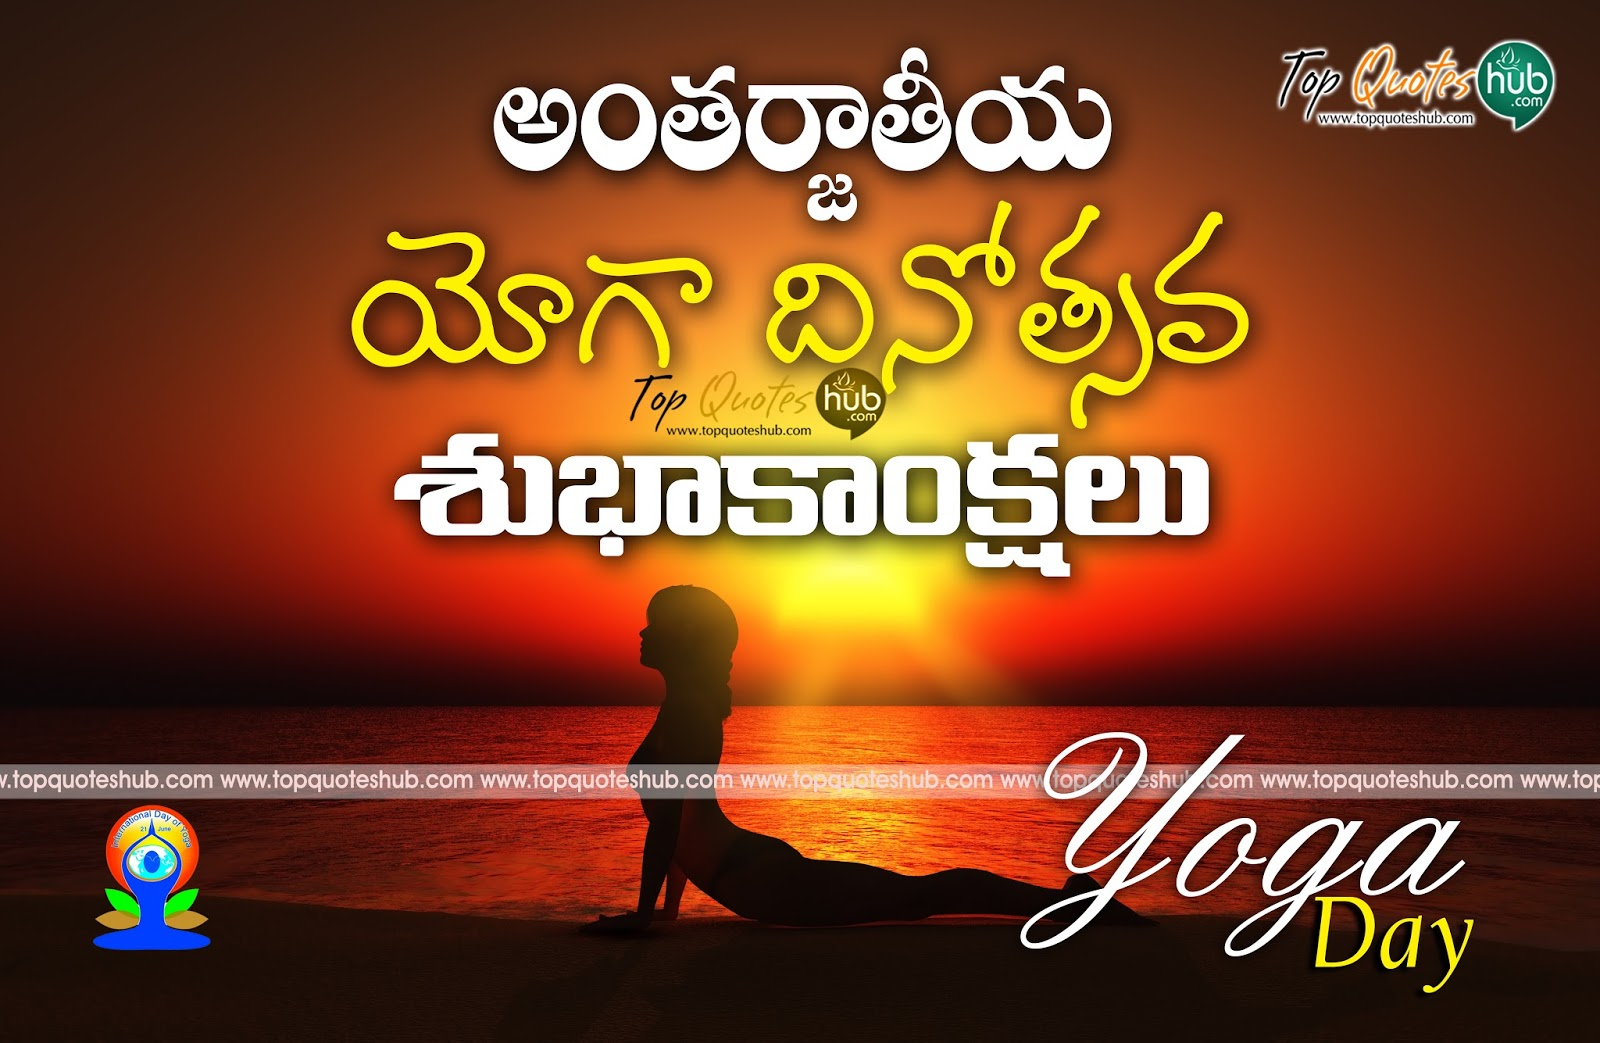 International yoga day inspirational sayings hd wallpapers famous yoga day telugu wishes quotes and sayings m4hsunfo